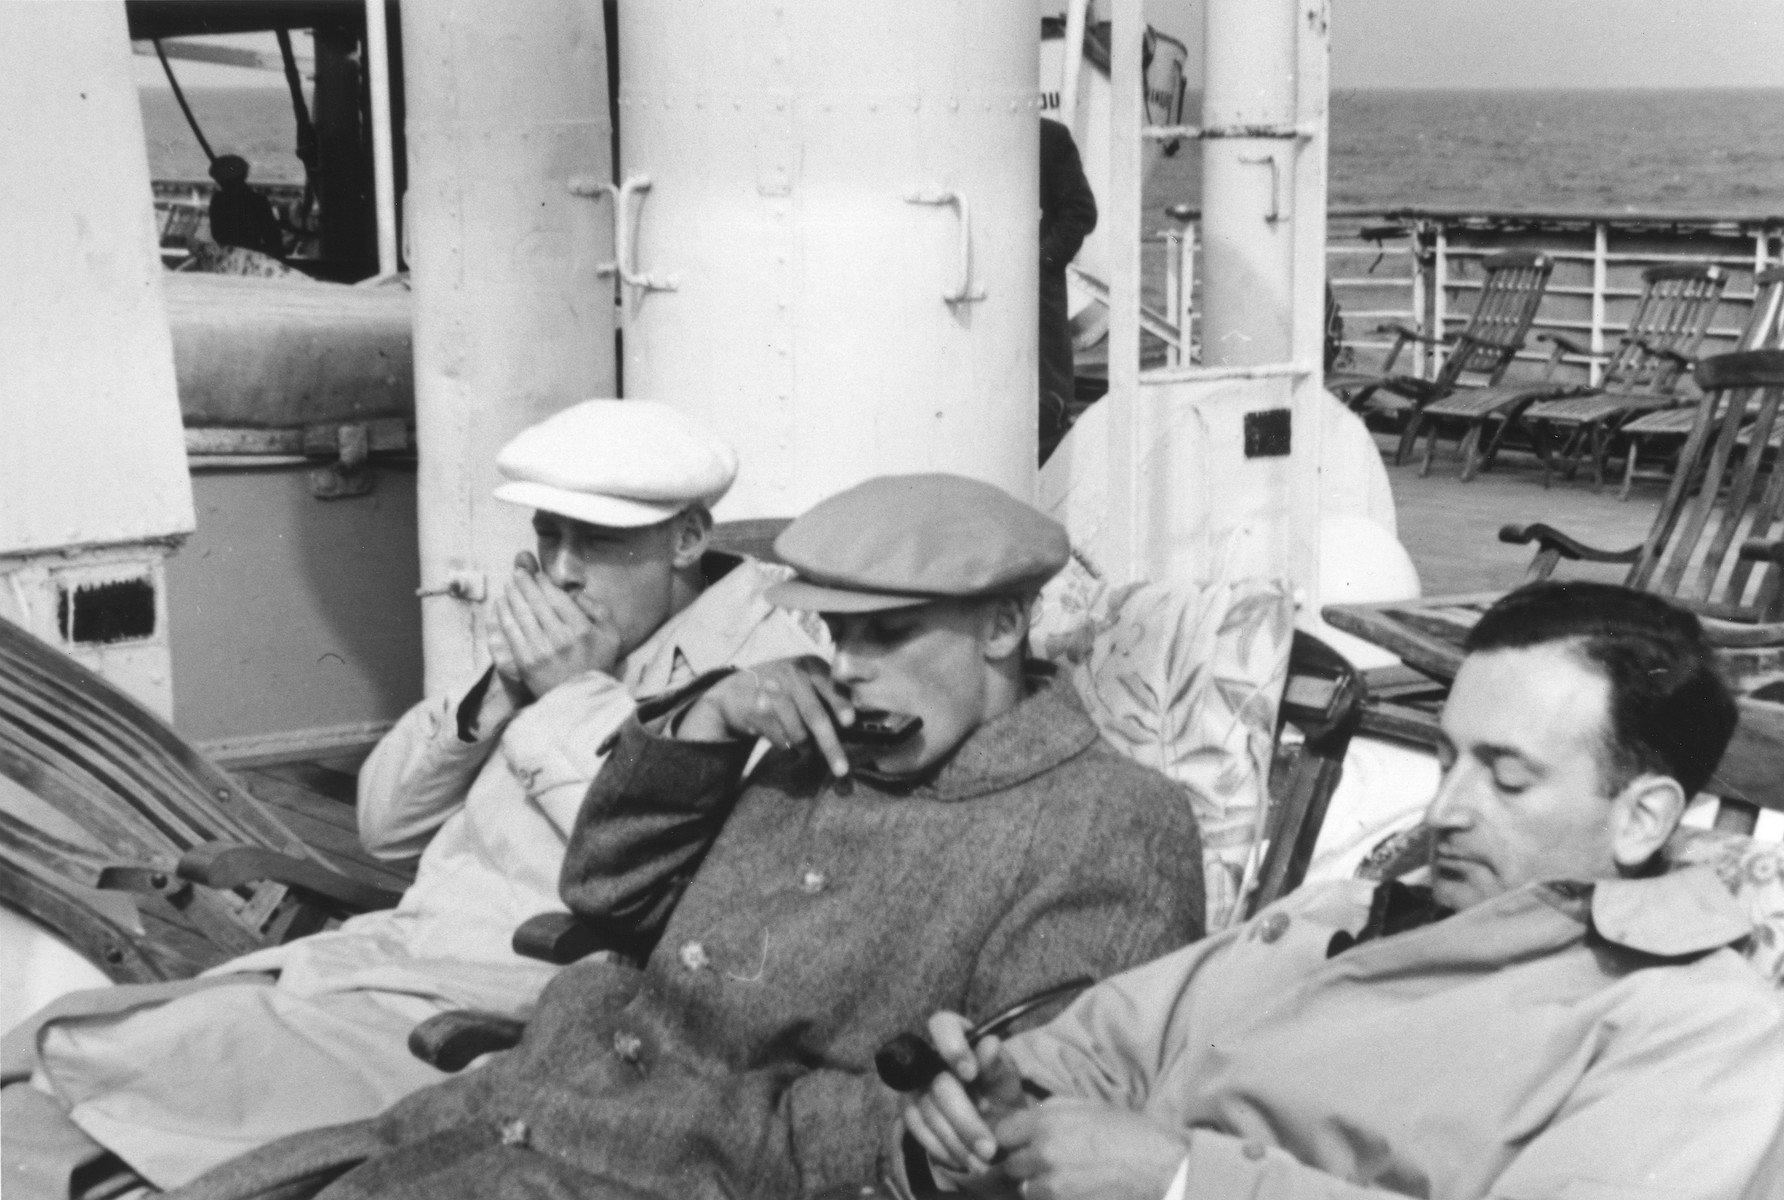 Three young Jewish refugees relax on the deck of the MS St. Louis.  Werner Lenneberg (right) naps while Fritz Buff (center) and another friend play harmonicas.